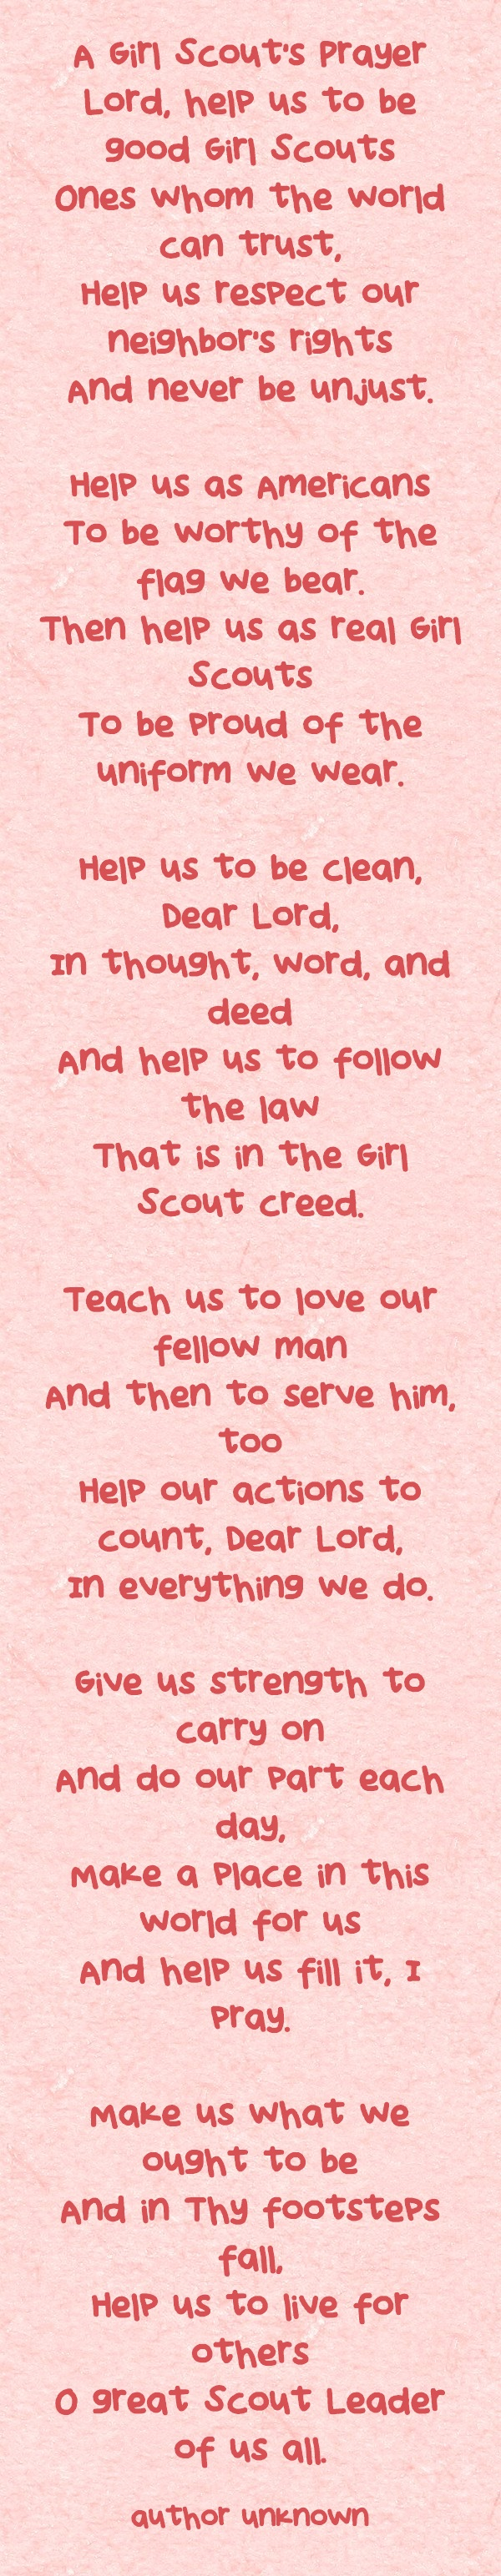 A Girl Scouts' Prayer – Use Resources Wisely